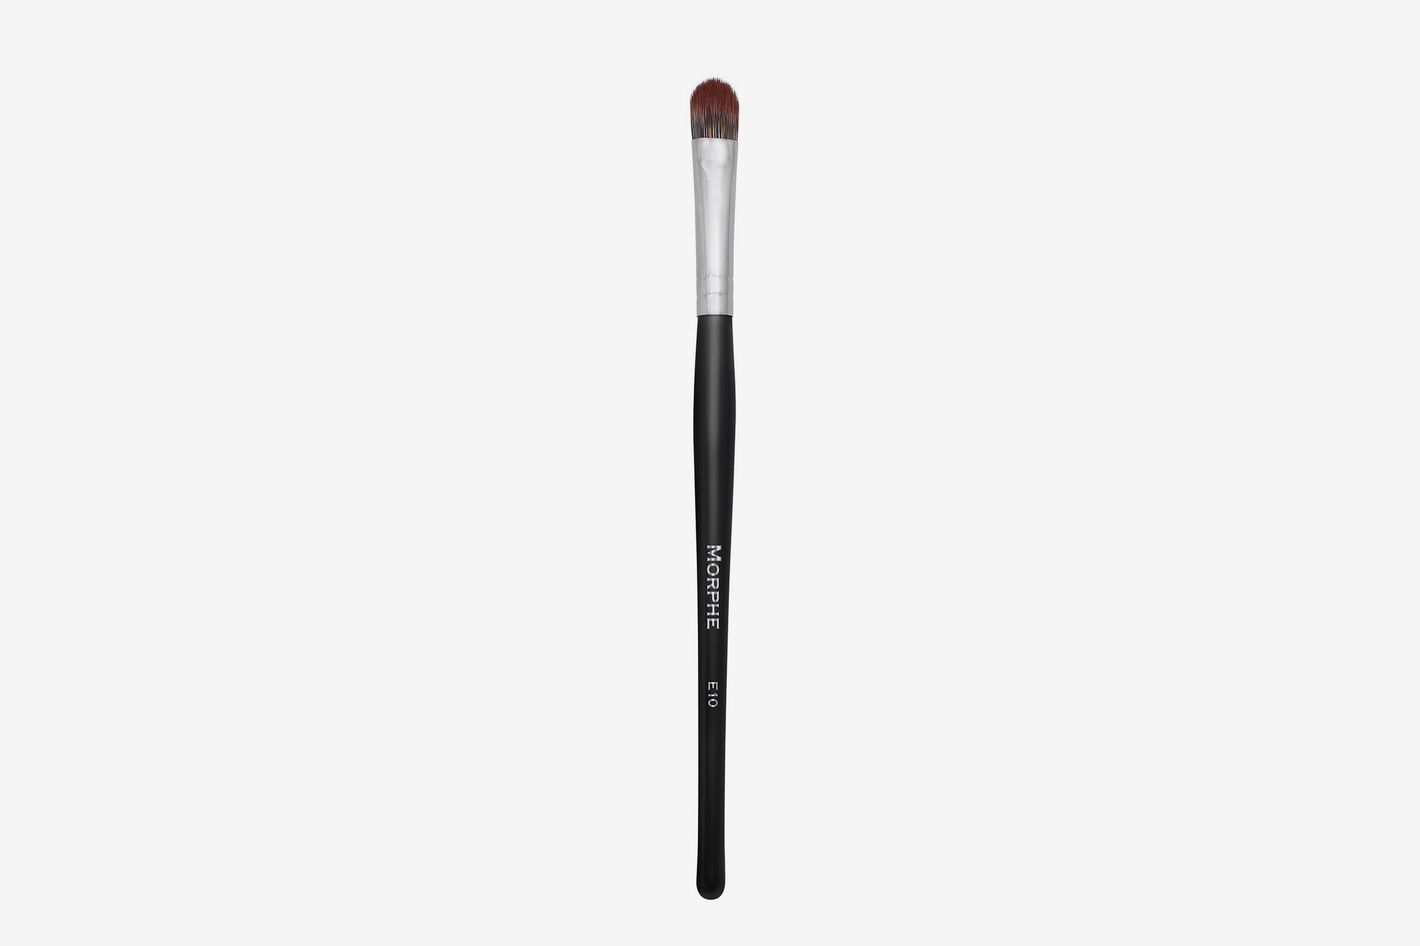 Morphe's E10 Tapered Concealer Brush